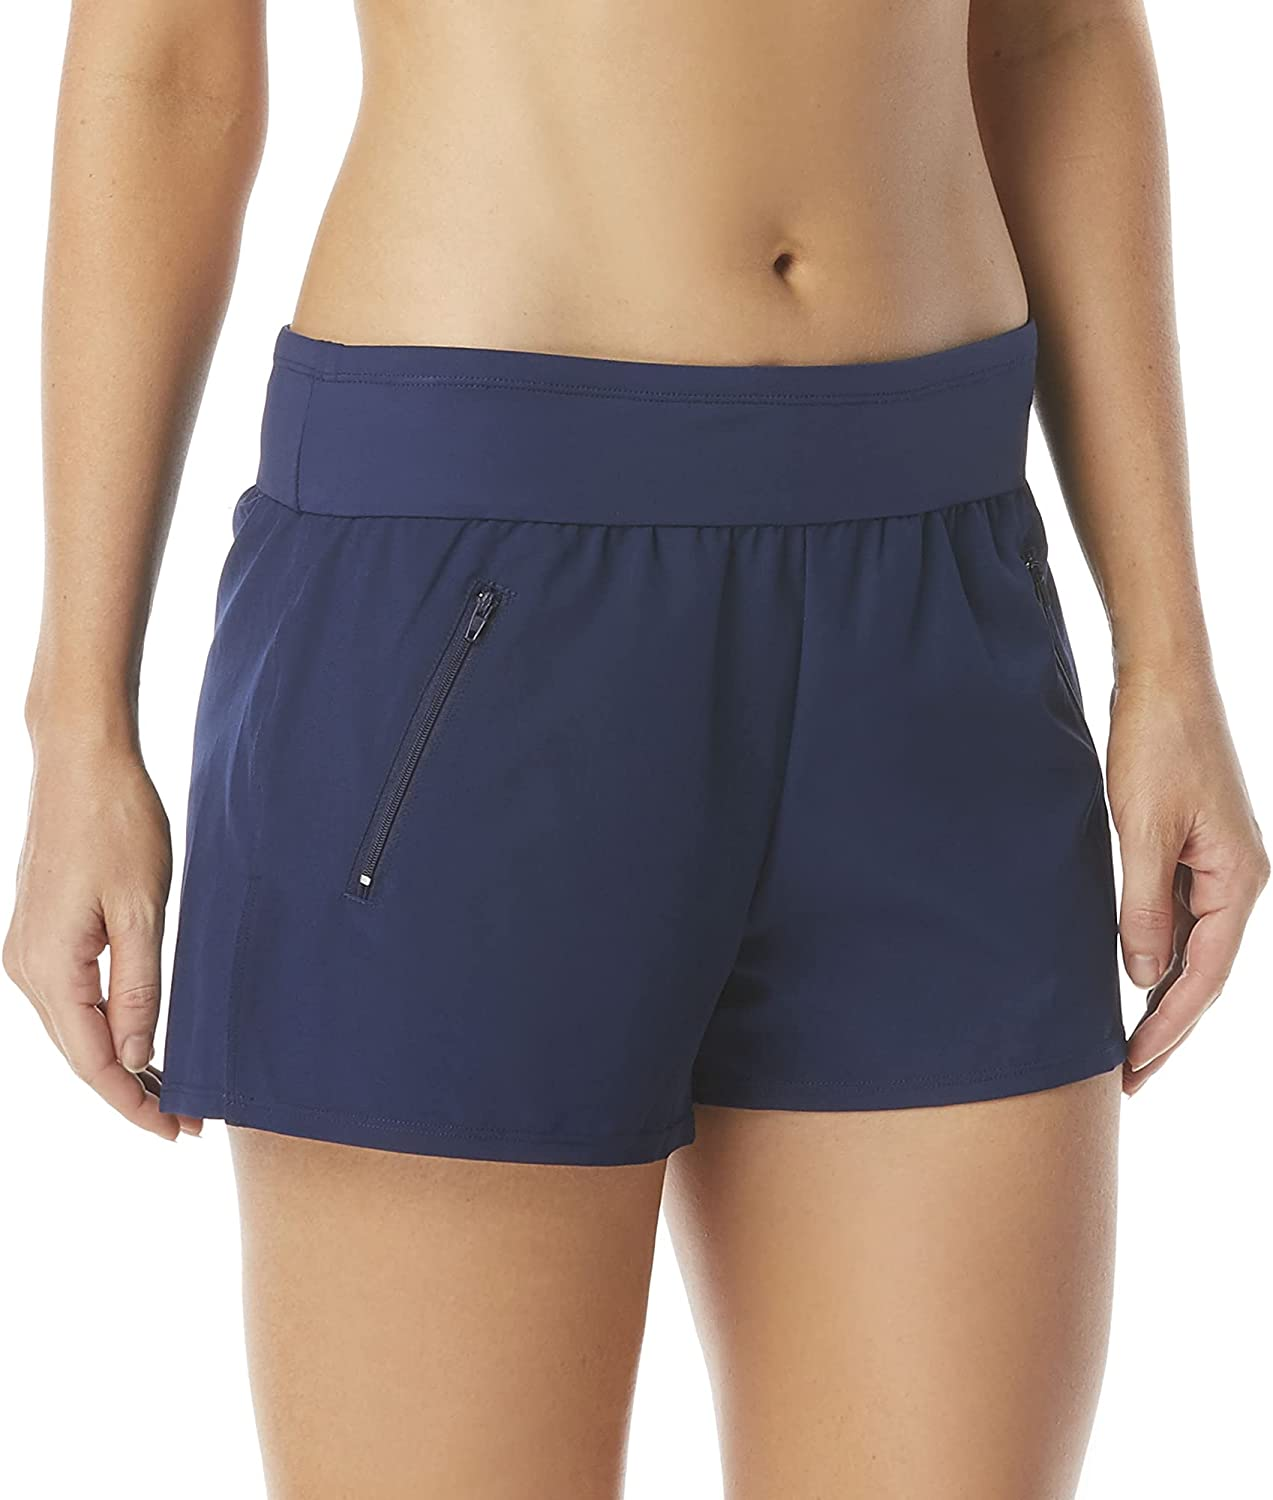 Stretch Woven In stock Beach Shorts — Drying Ranking TOP20 Bottoms Quick Athletic Swim